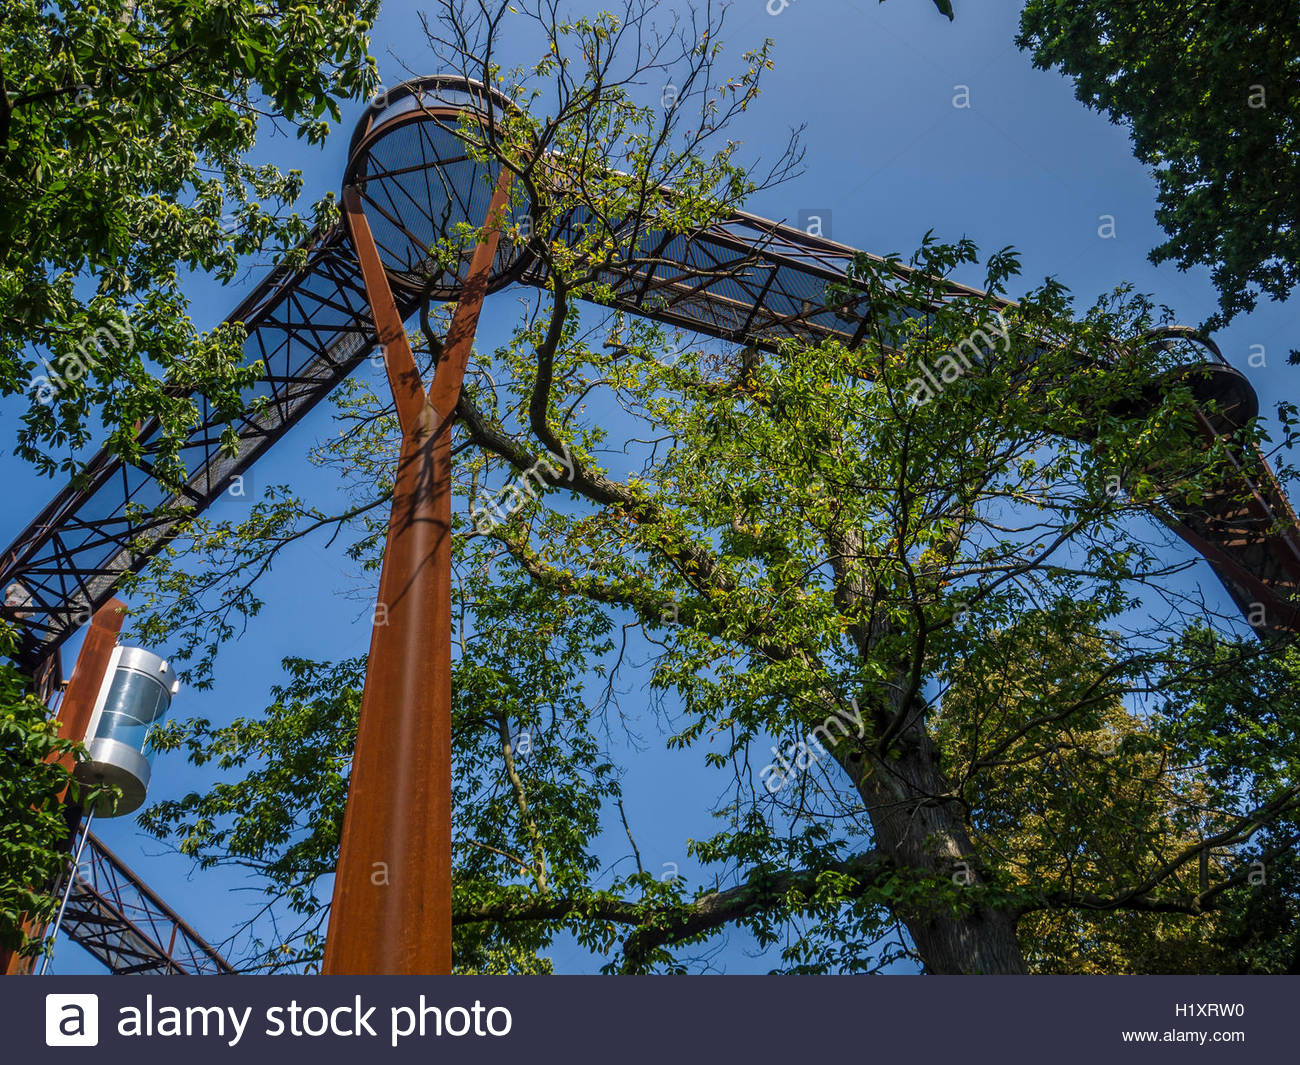 Kew Gardens Tree Top Walk Way Birds eye view of the canopy 18 metres high Oak Lime Chesnut trees looking up - Stock Image